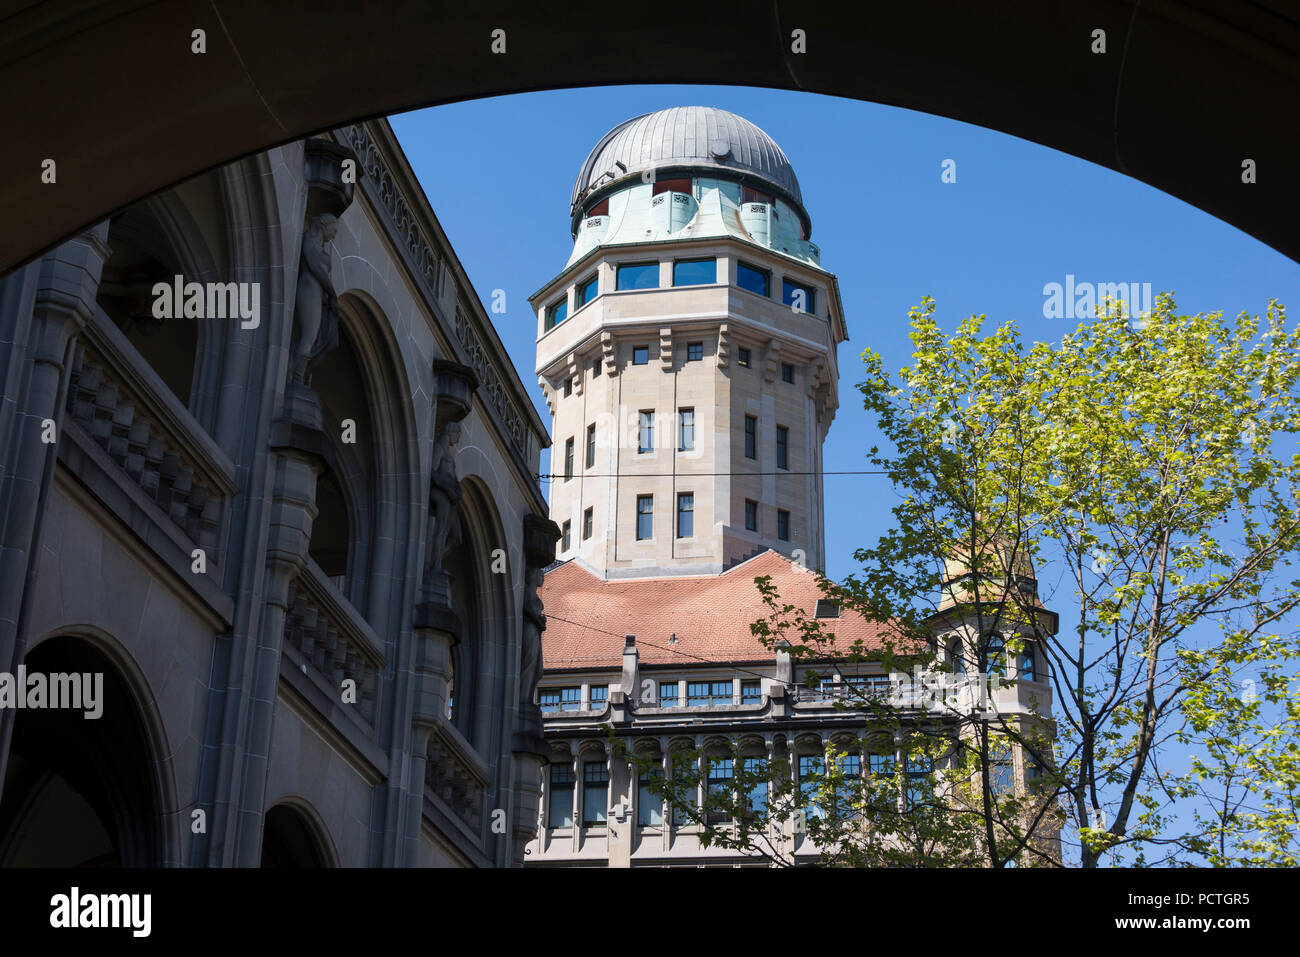 View on the observatory Urania, Bahnhofstrasse, District 1, Zurich, Canton Zurich, Switzerland - Stock Image